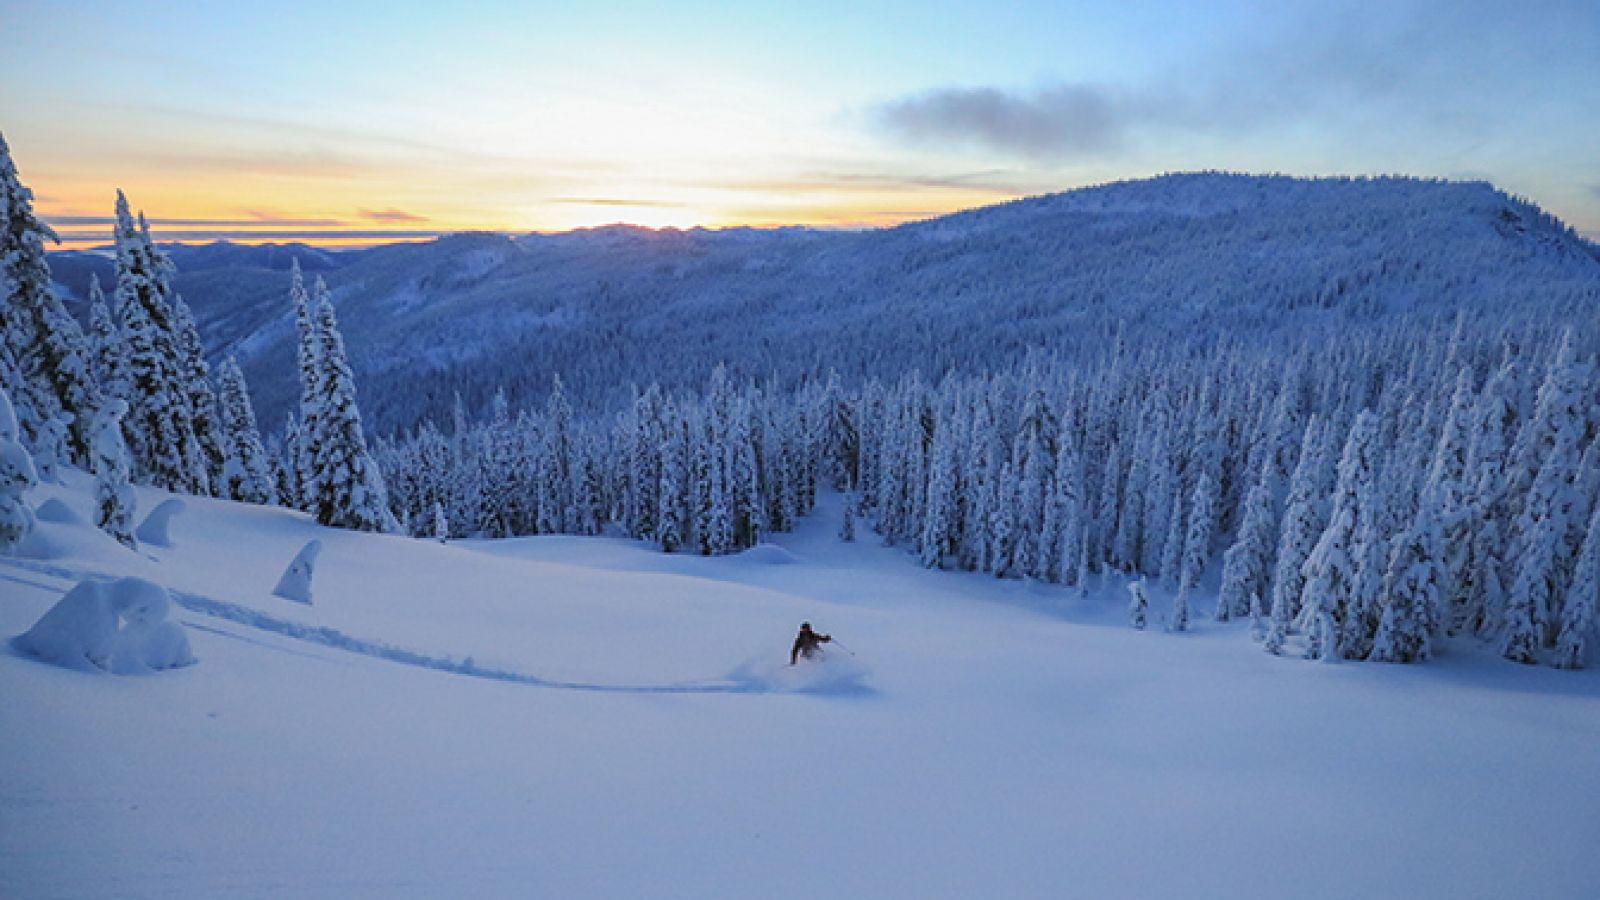 Whitewater receives 40 feet of snow each year.